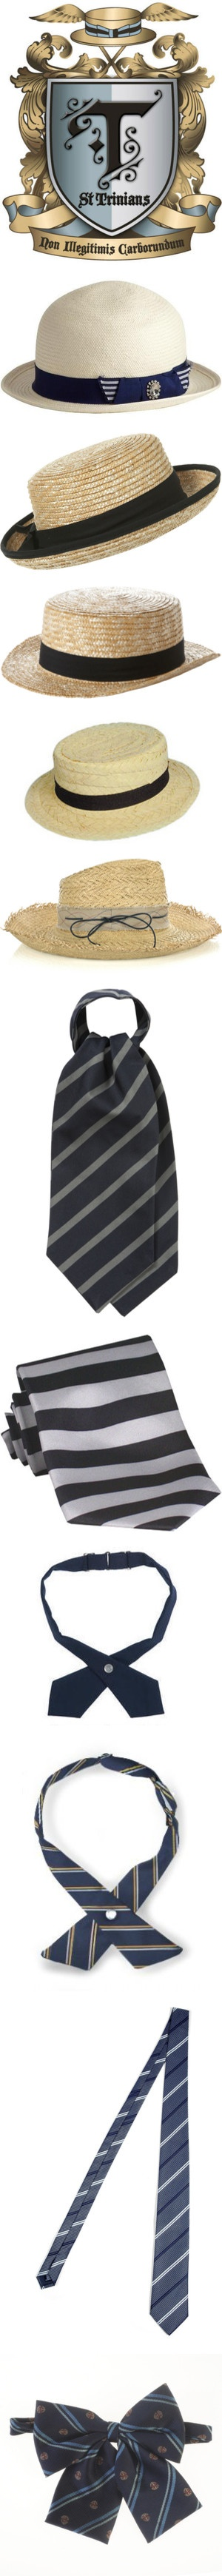 """""""ST. TRINIAN'S UNIFORM"""" by tany ❤ liked on Polyvore"""